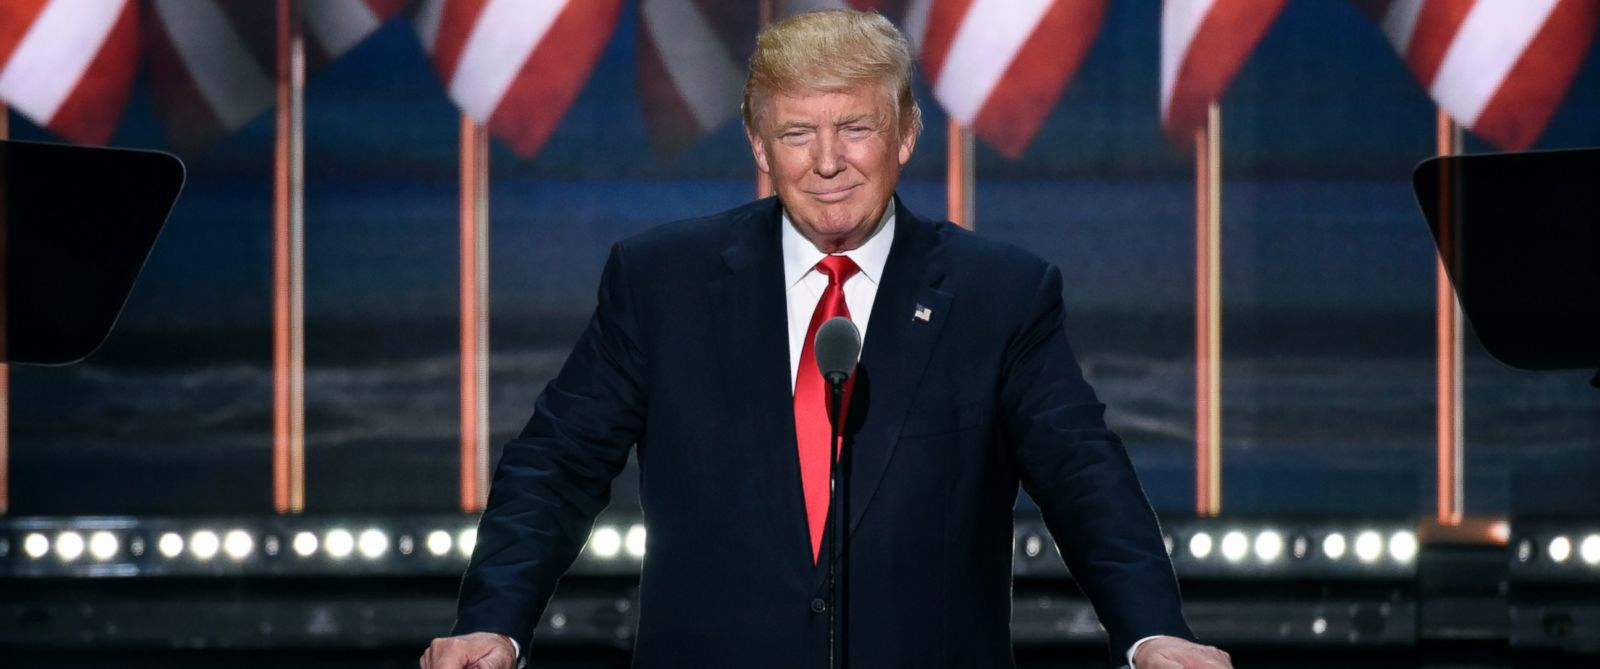 PHOTO: Donald Trump speaks at the 2016 Republican National Convention from the Quicken Loans Arena in Cleveland, Ohio.